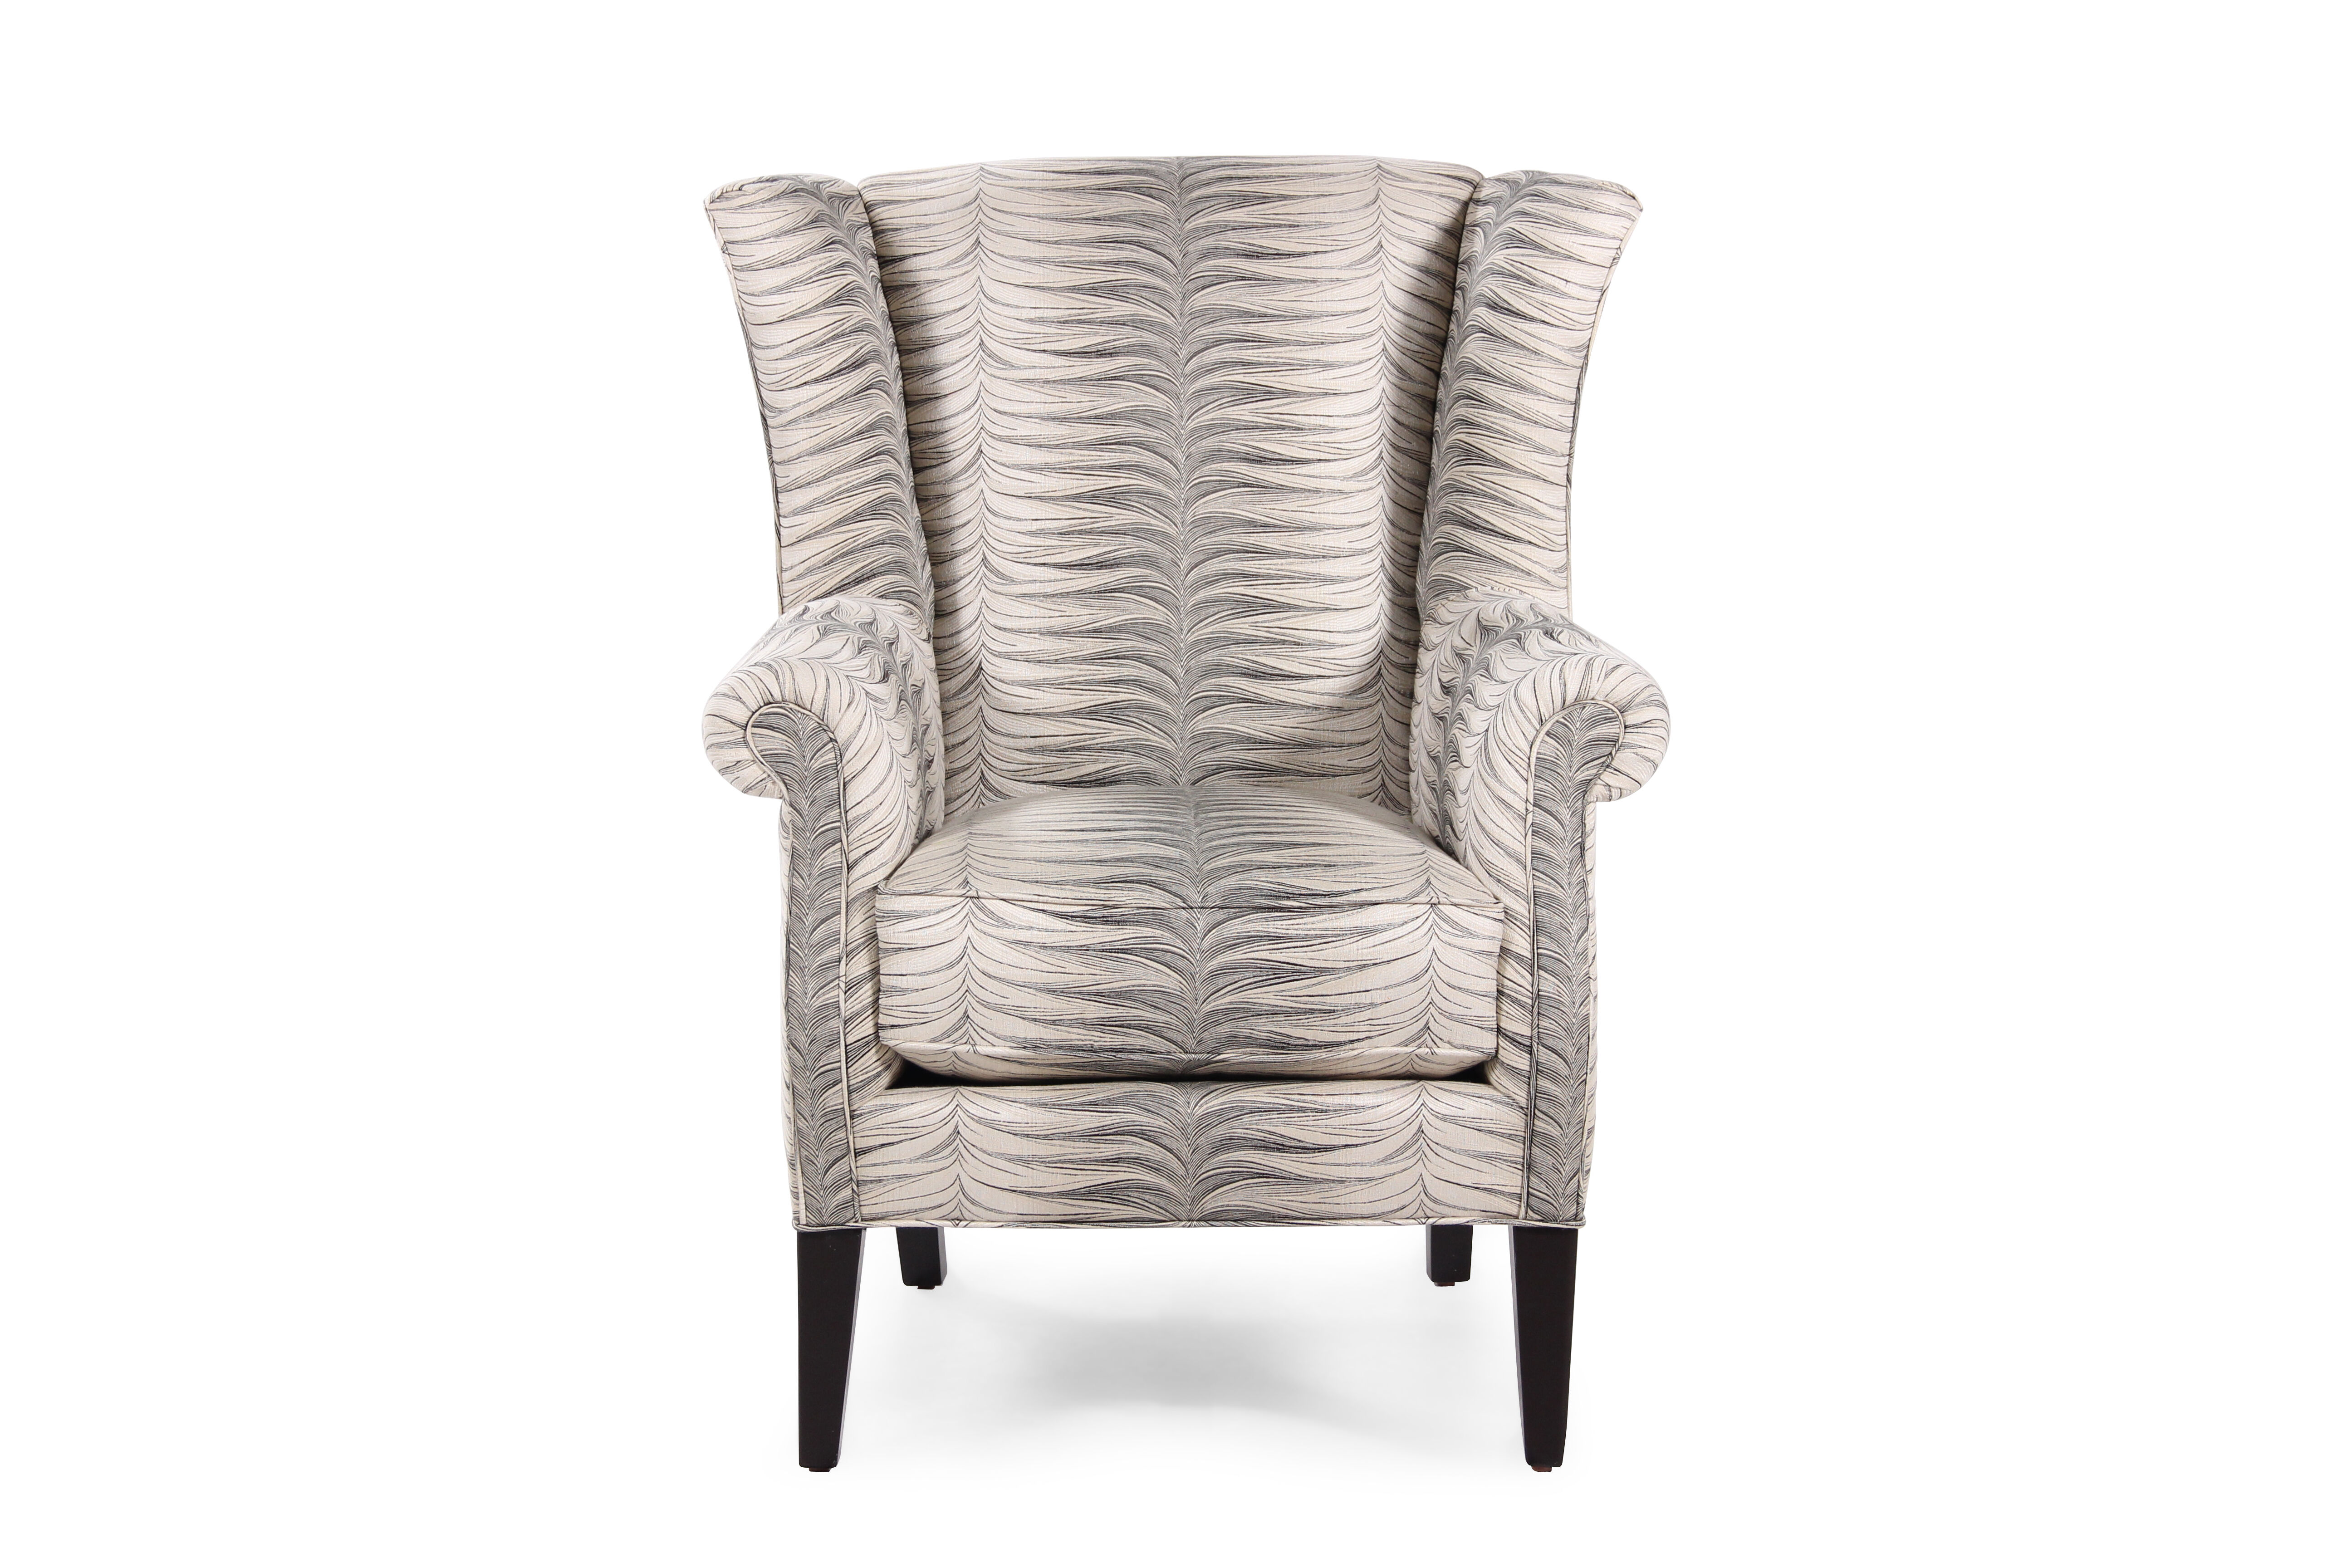 Images Swirl Patterned Contemporary 35u0026quot; Chair In Cream Swirl Patterned  Contemporary 35u0026quot; Chair In Cream